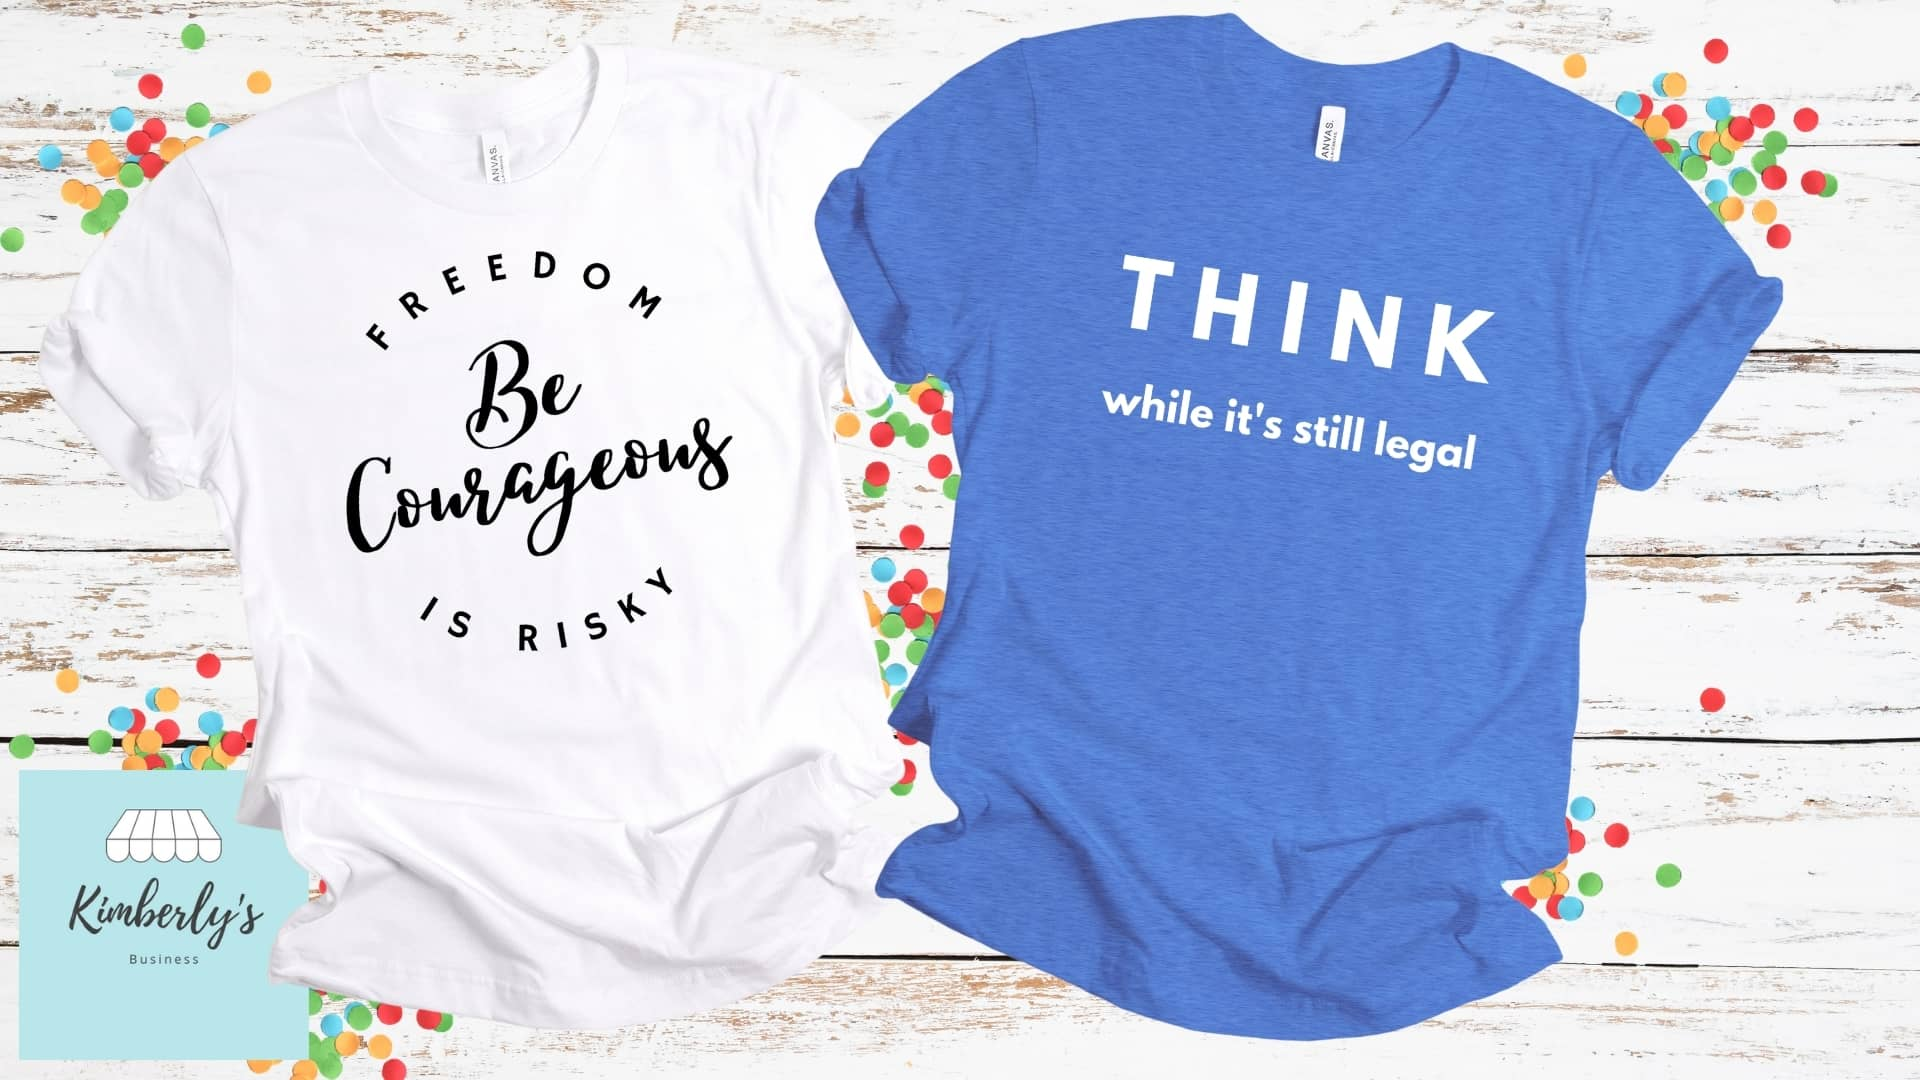 Kimberly Neudorf Freedom Fashion Shop Be courageous Think while it's still legal t-shirts